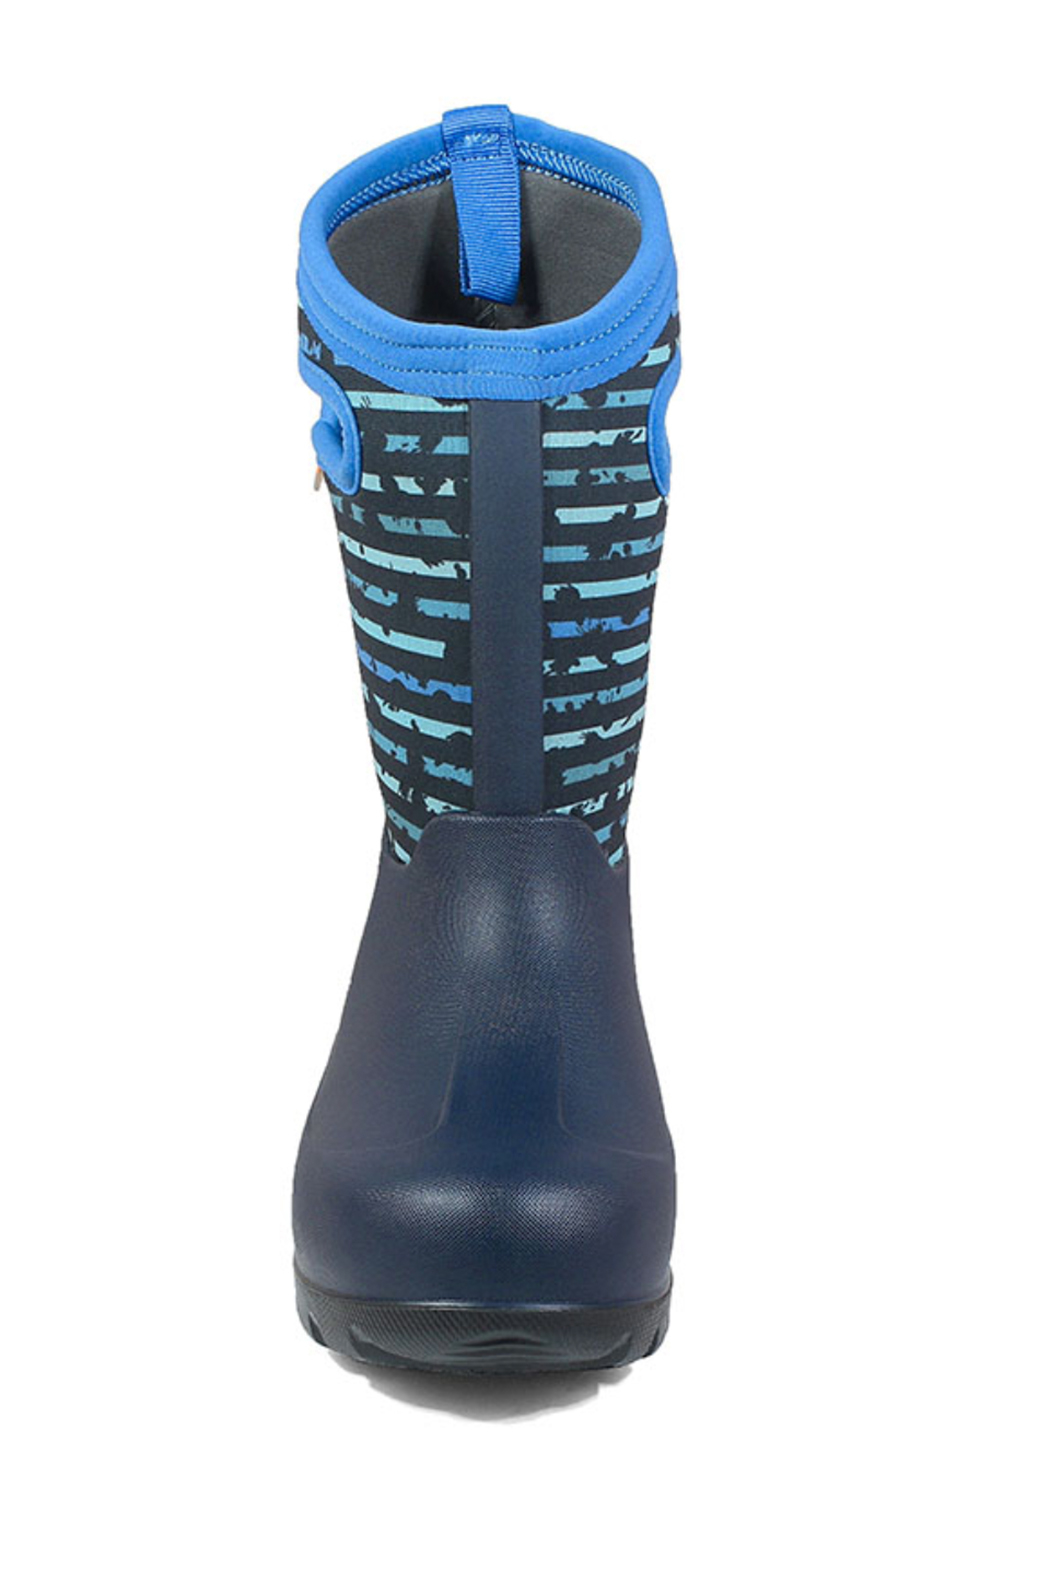 BOGS Neo-Classic Stripe Kids' Insulated Boots - Side Cropped Image